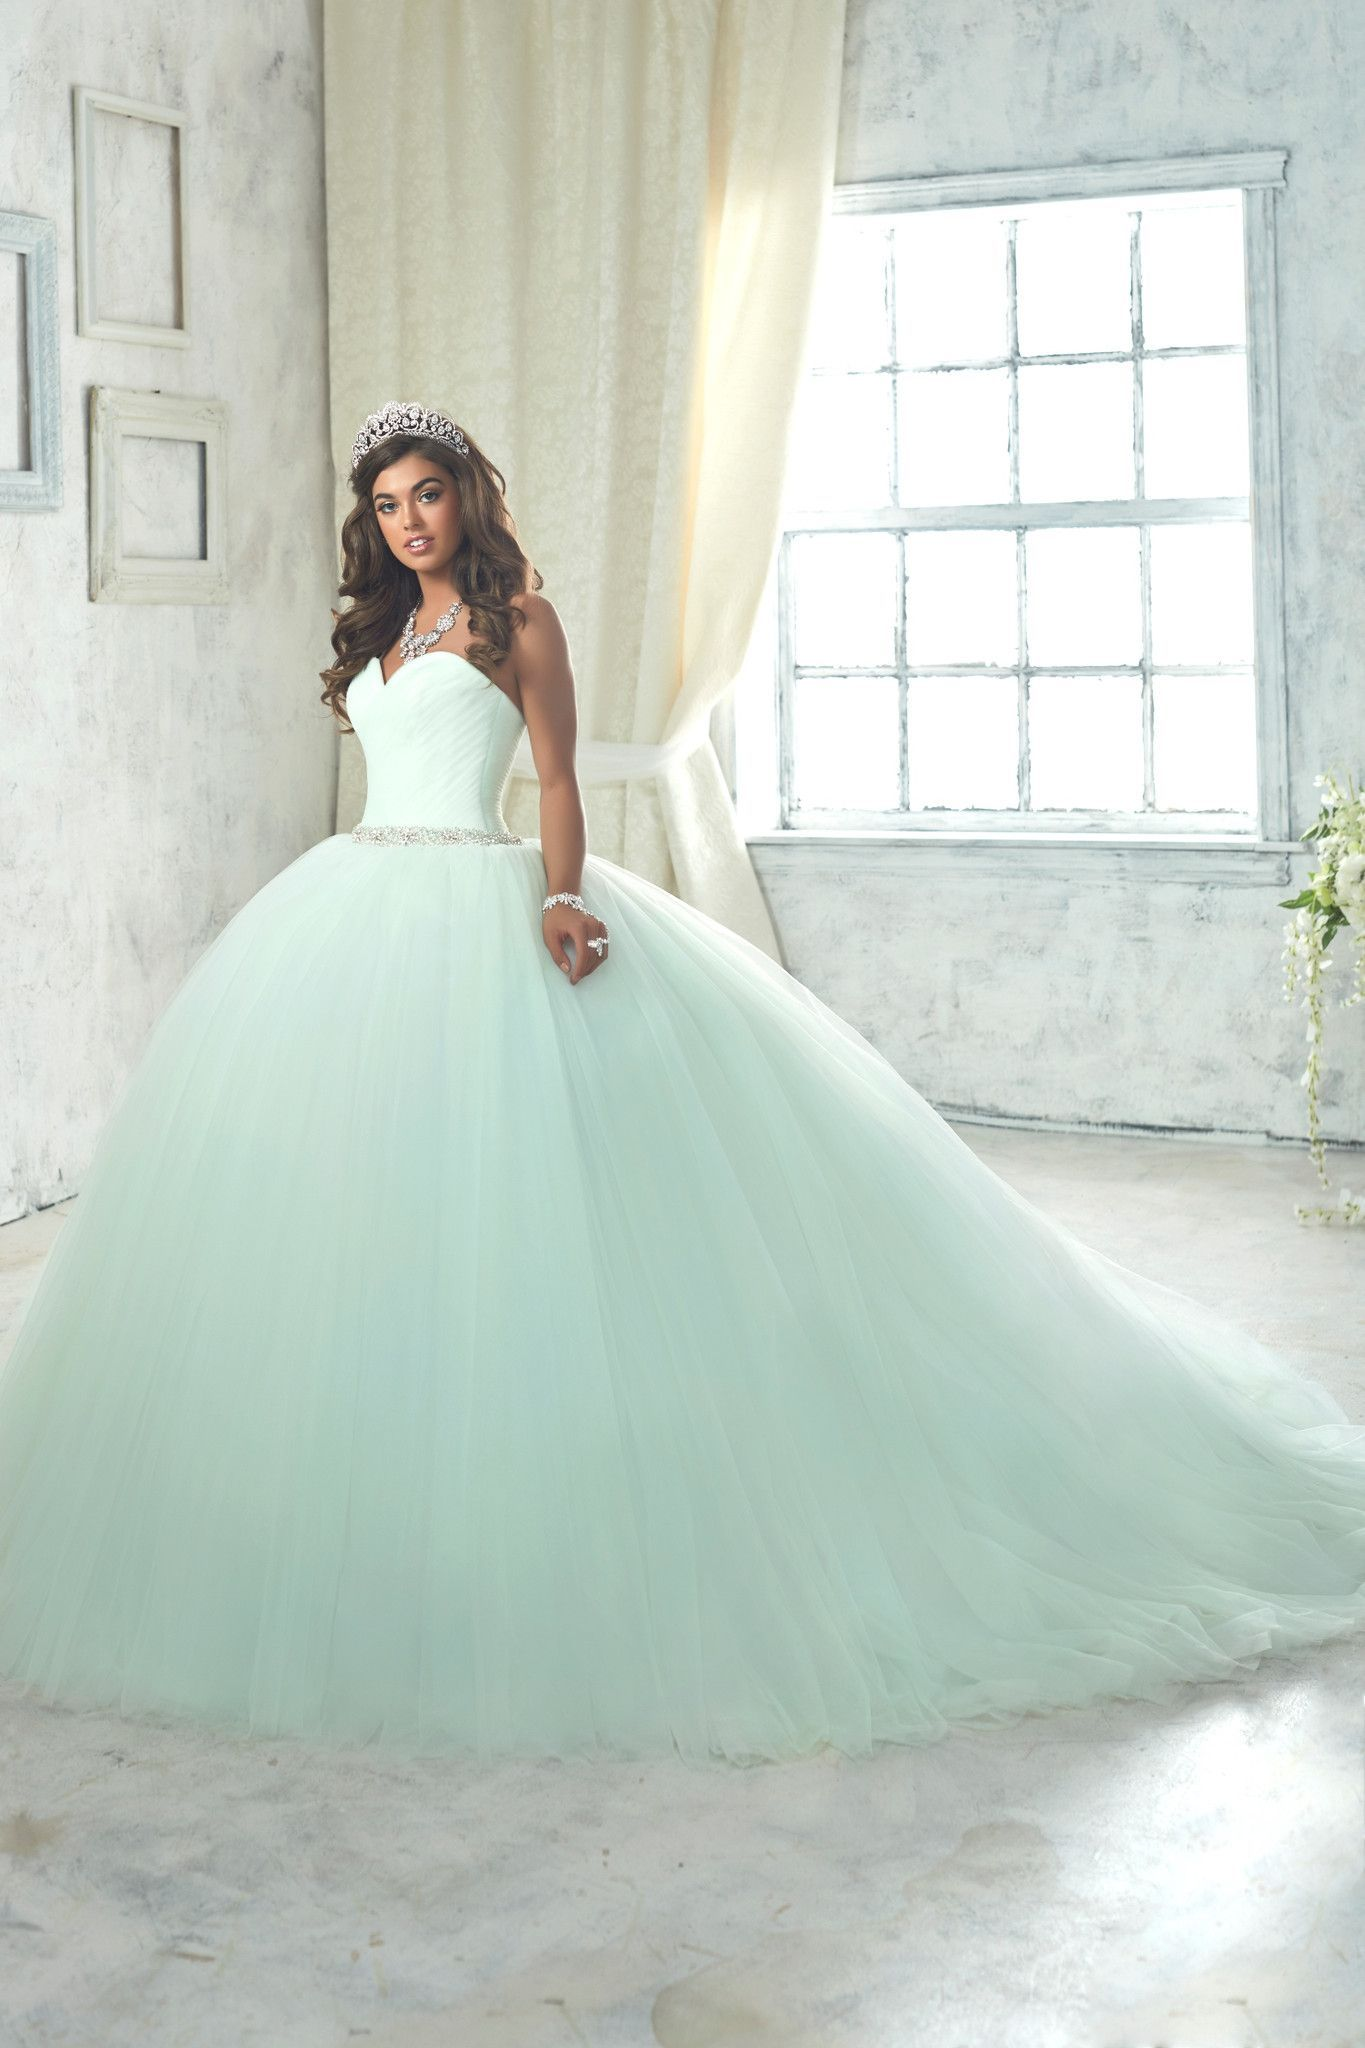 Coral Quinceanera Dresses You Have to Try On | Quinceanera ideas ...